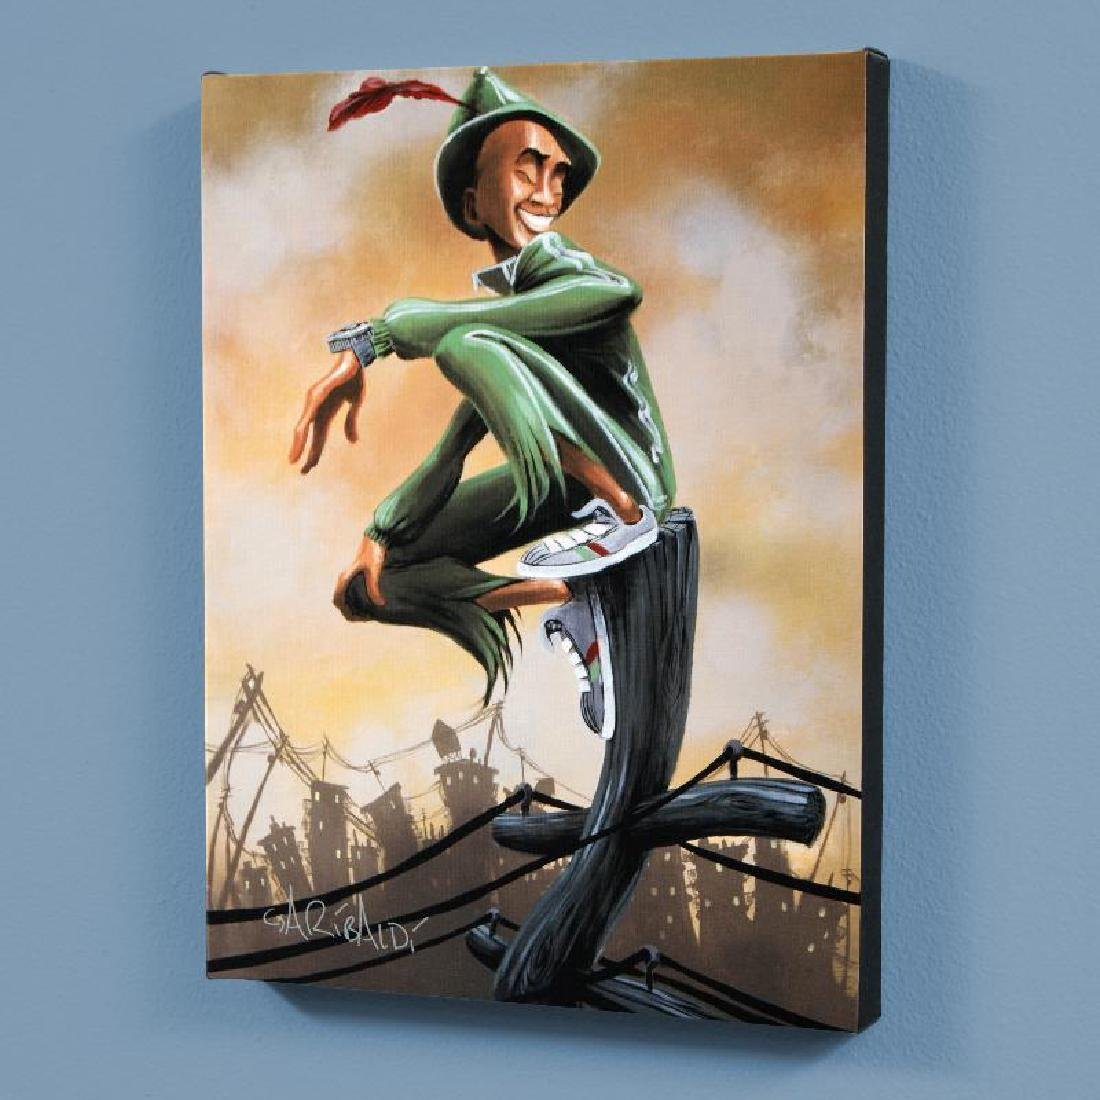 """Peter Pan"" LIMITED EDITION Giclee on Canvas by David"